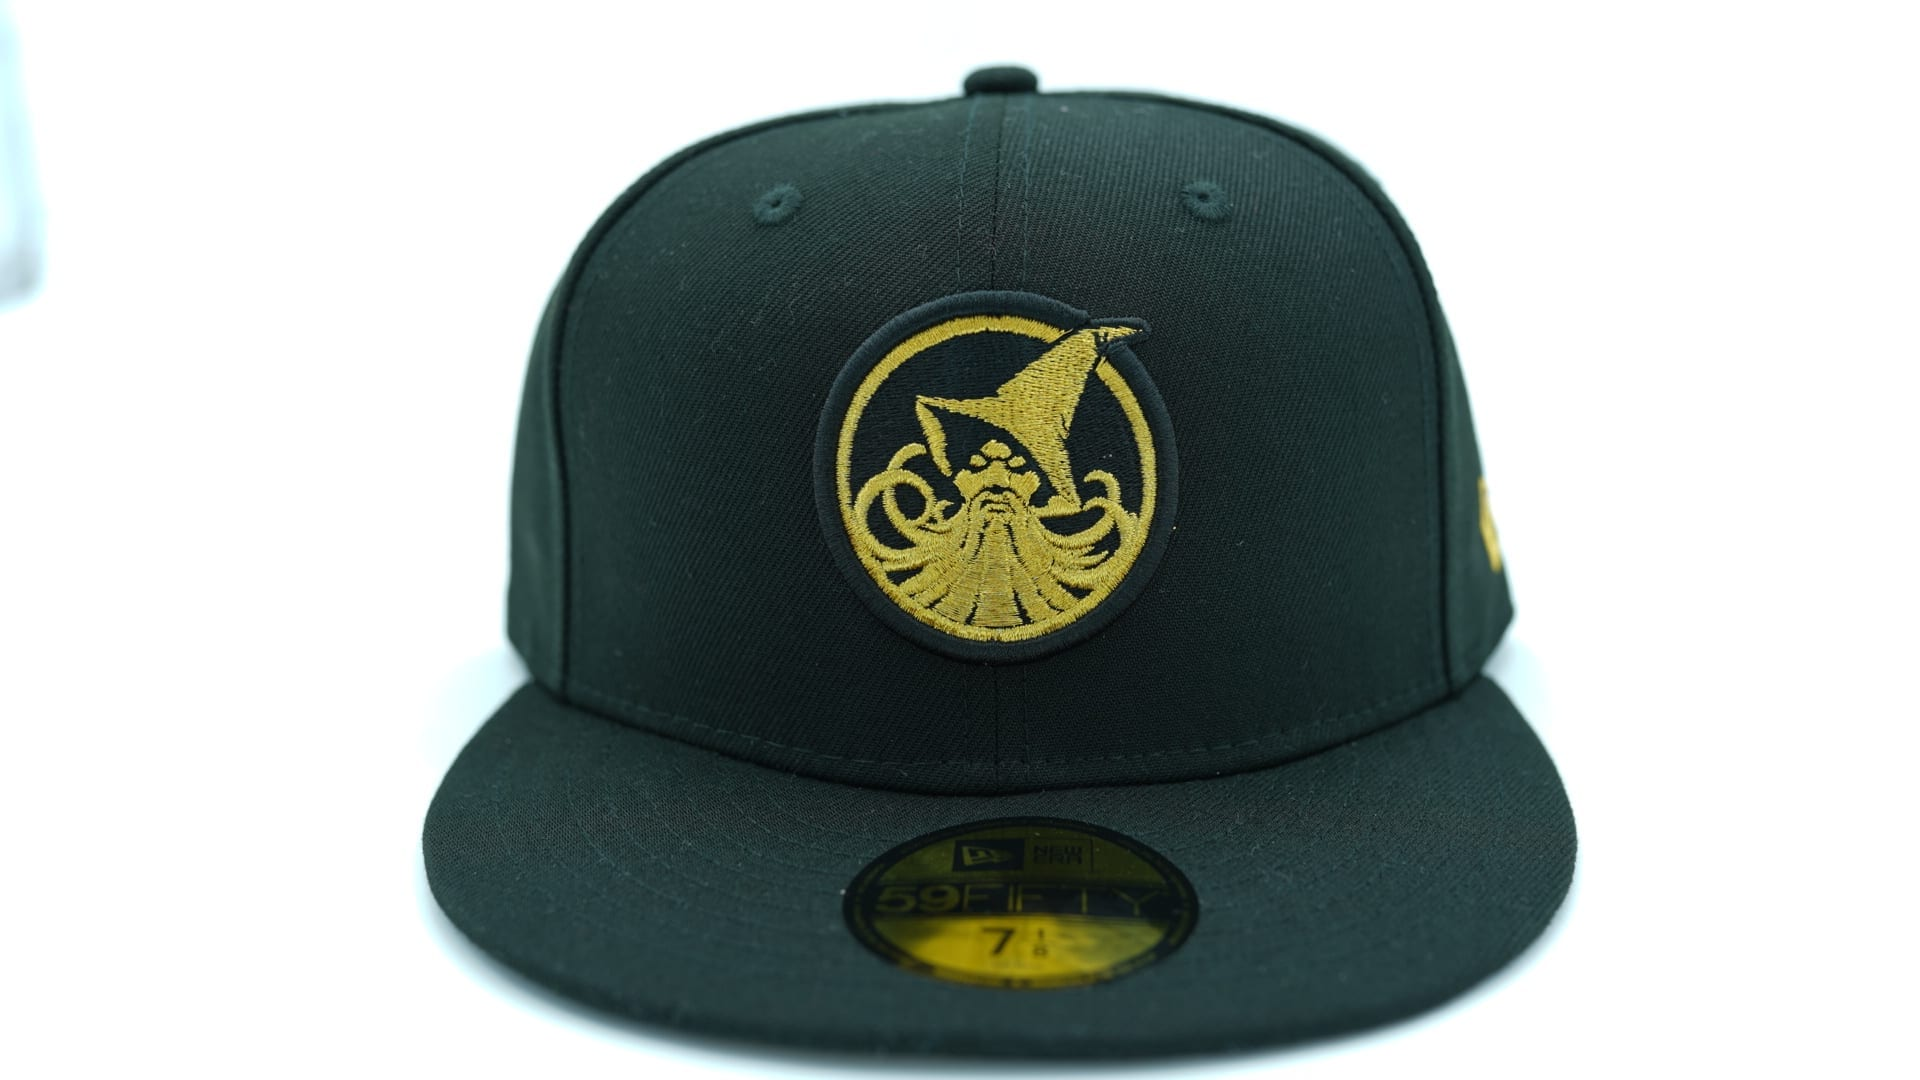 Golden State Warriors Blacked Out High Crown Fitted Cap by MITCHELL & NESS x NBA